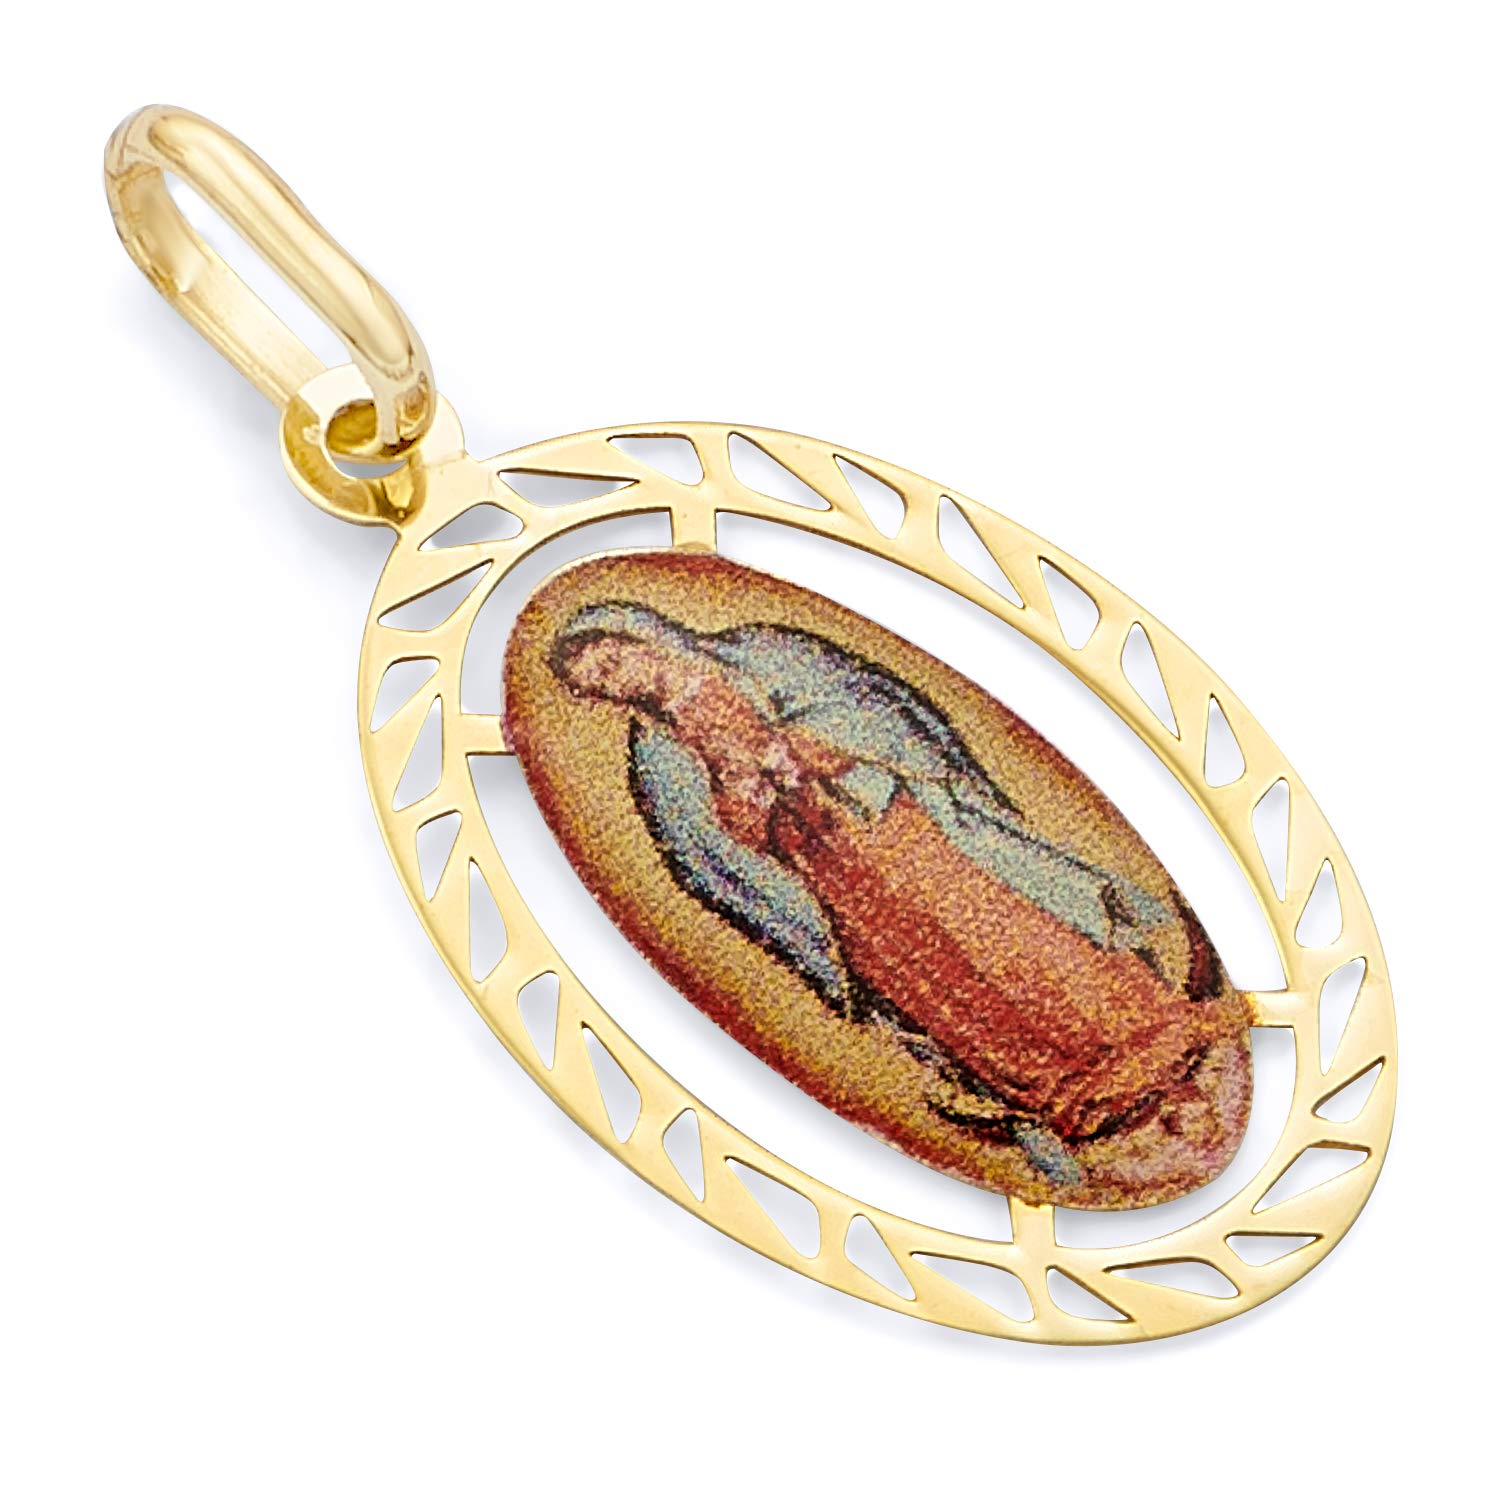 Wellingsale 14K Yellow Gold Polished Ornate Religious Our Lady Of Guadalupe Enamel Charm Pendant